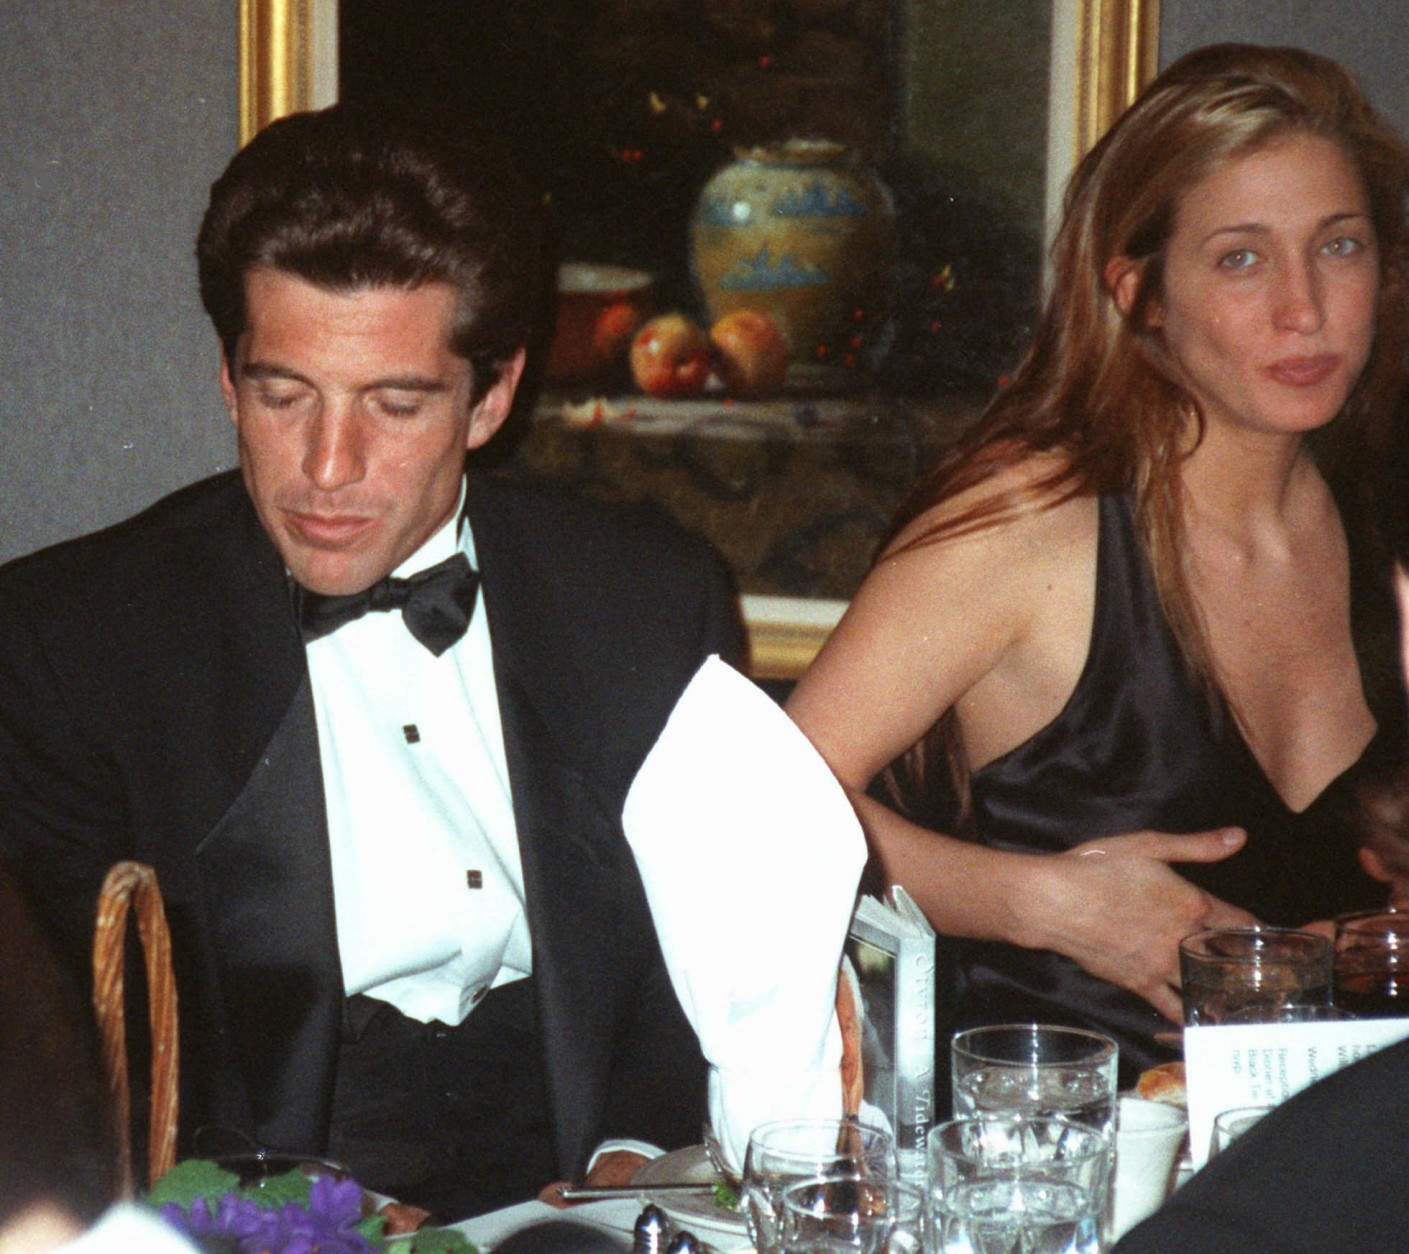 In 1996, John F. Kennedy Jr. married Carolyn Bessette in a secret ceremony on Cumberland Island, Georgia. Here, John F. Kennedy, Jr., and Carolyn Bessette dine at the National Arts Club in New York in this March 1995 file picture. (AP Photo/Aubrey Reuben)